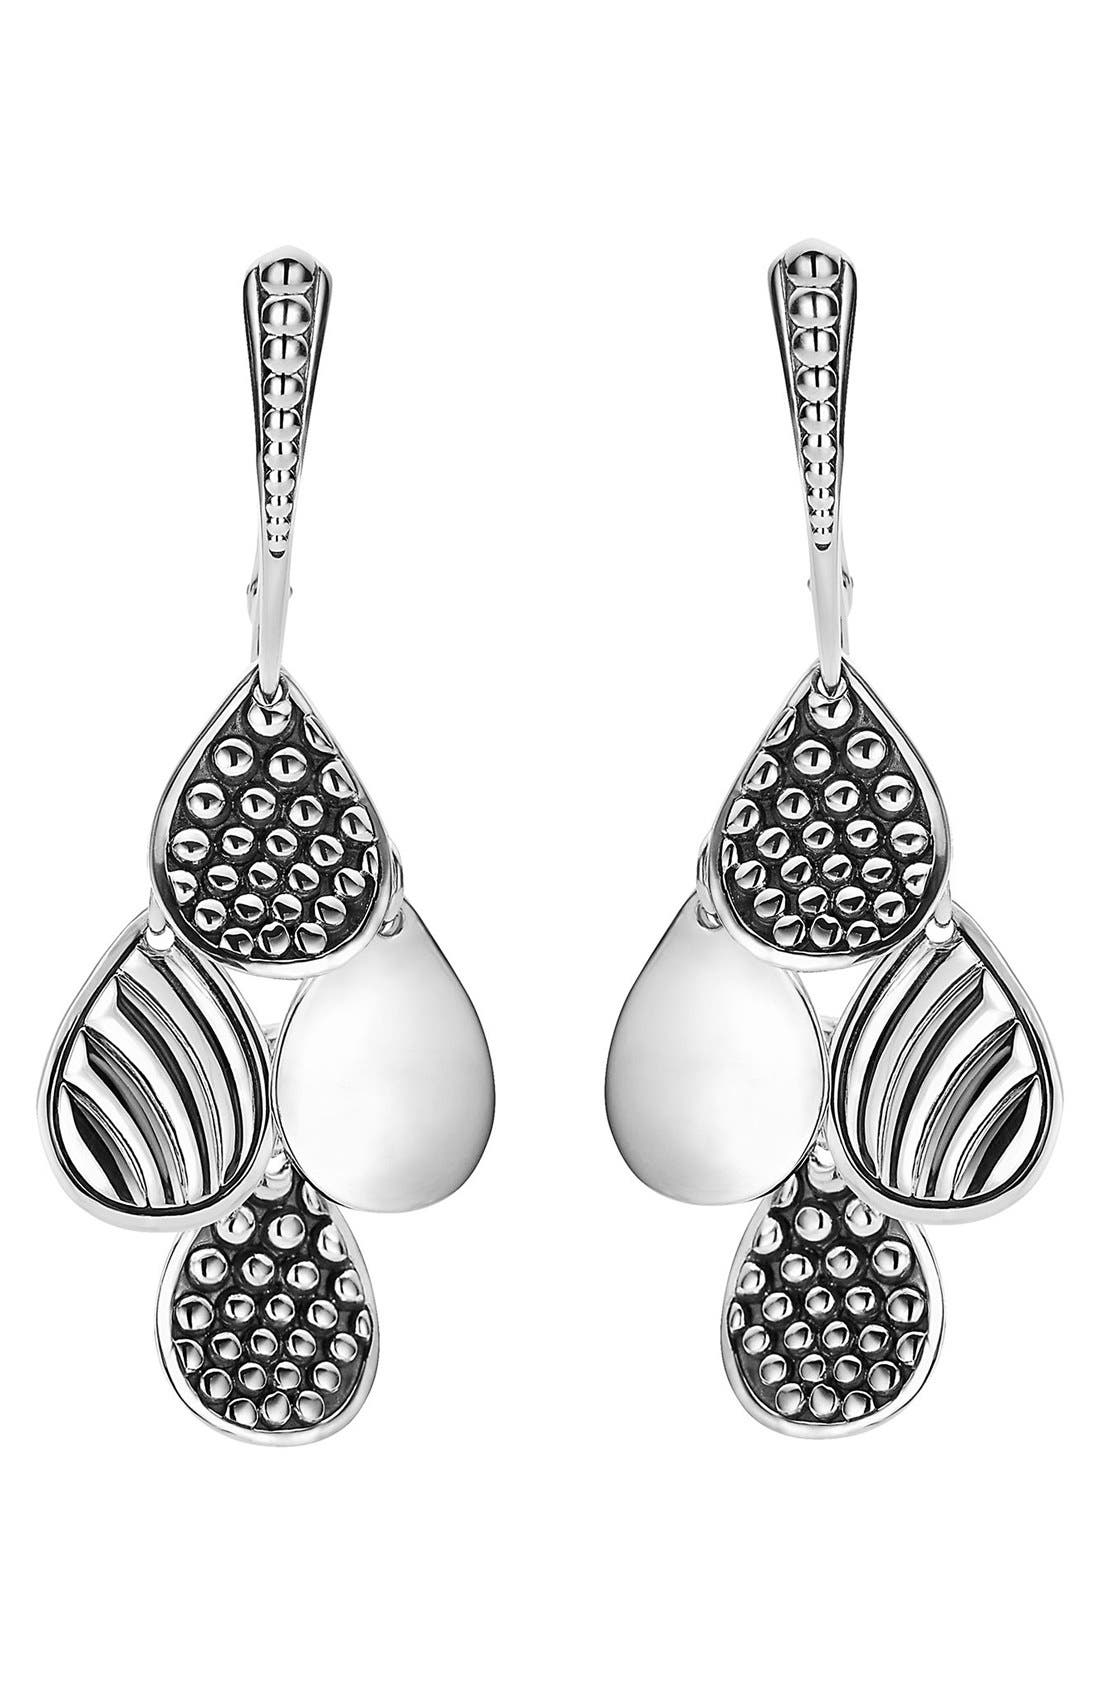 Caviar Tiered Drop Earrings,                             Alternate thumbnail 2, color,                             Silver